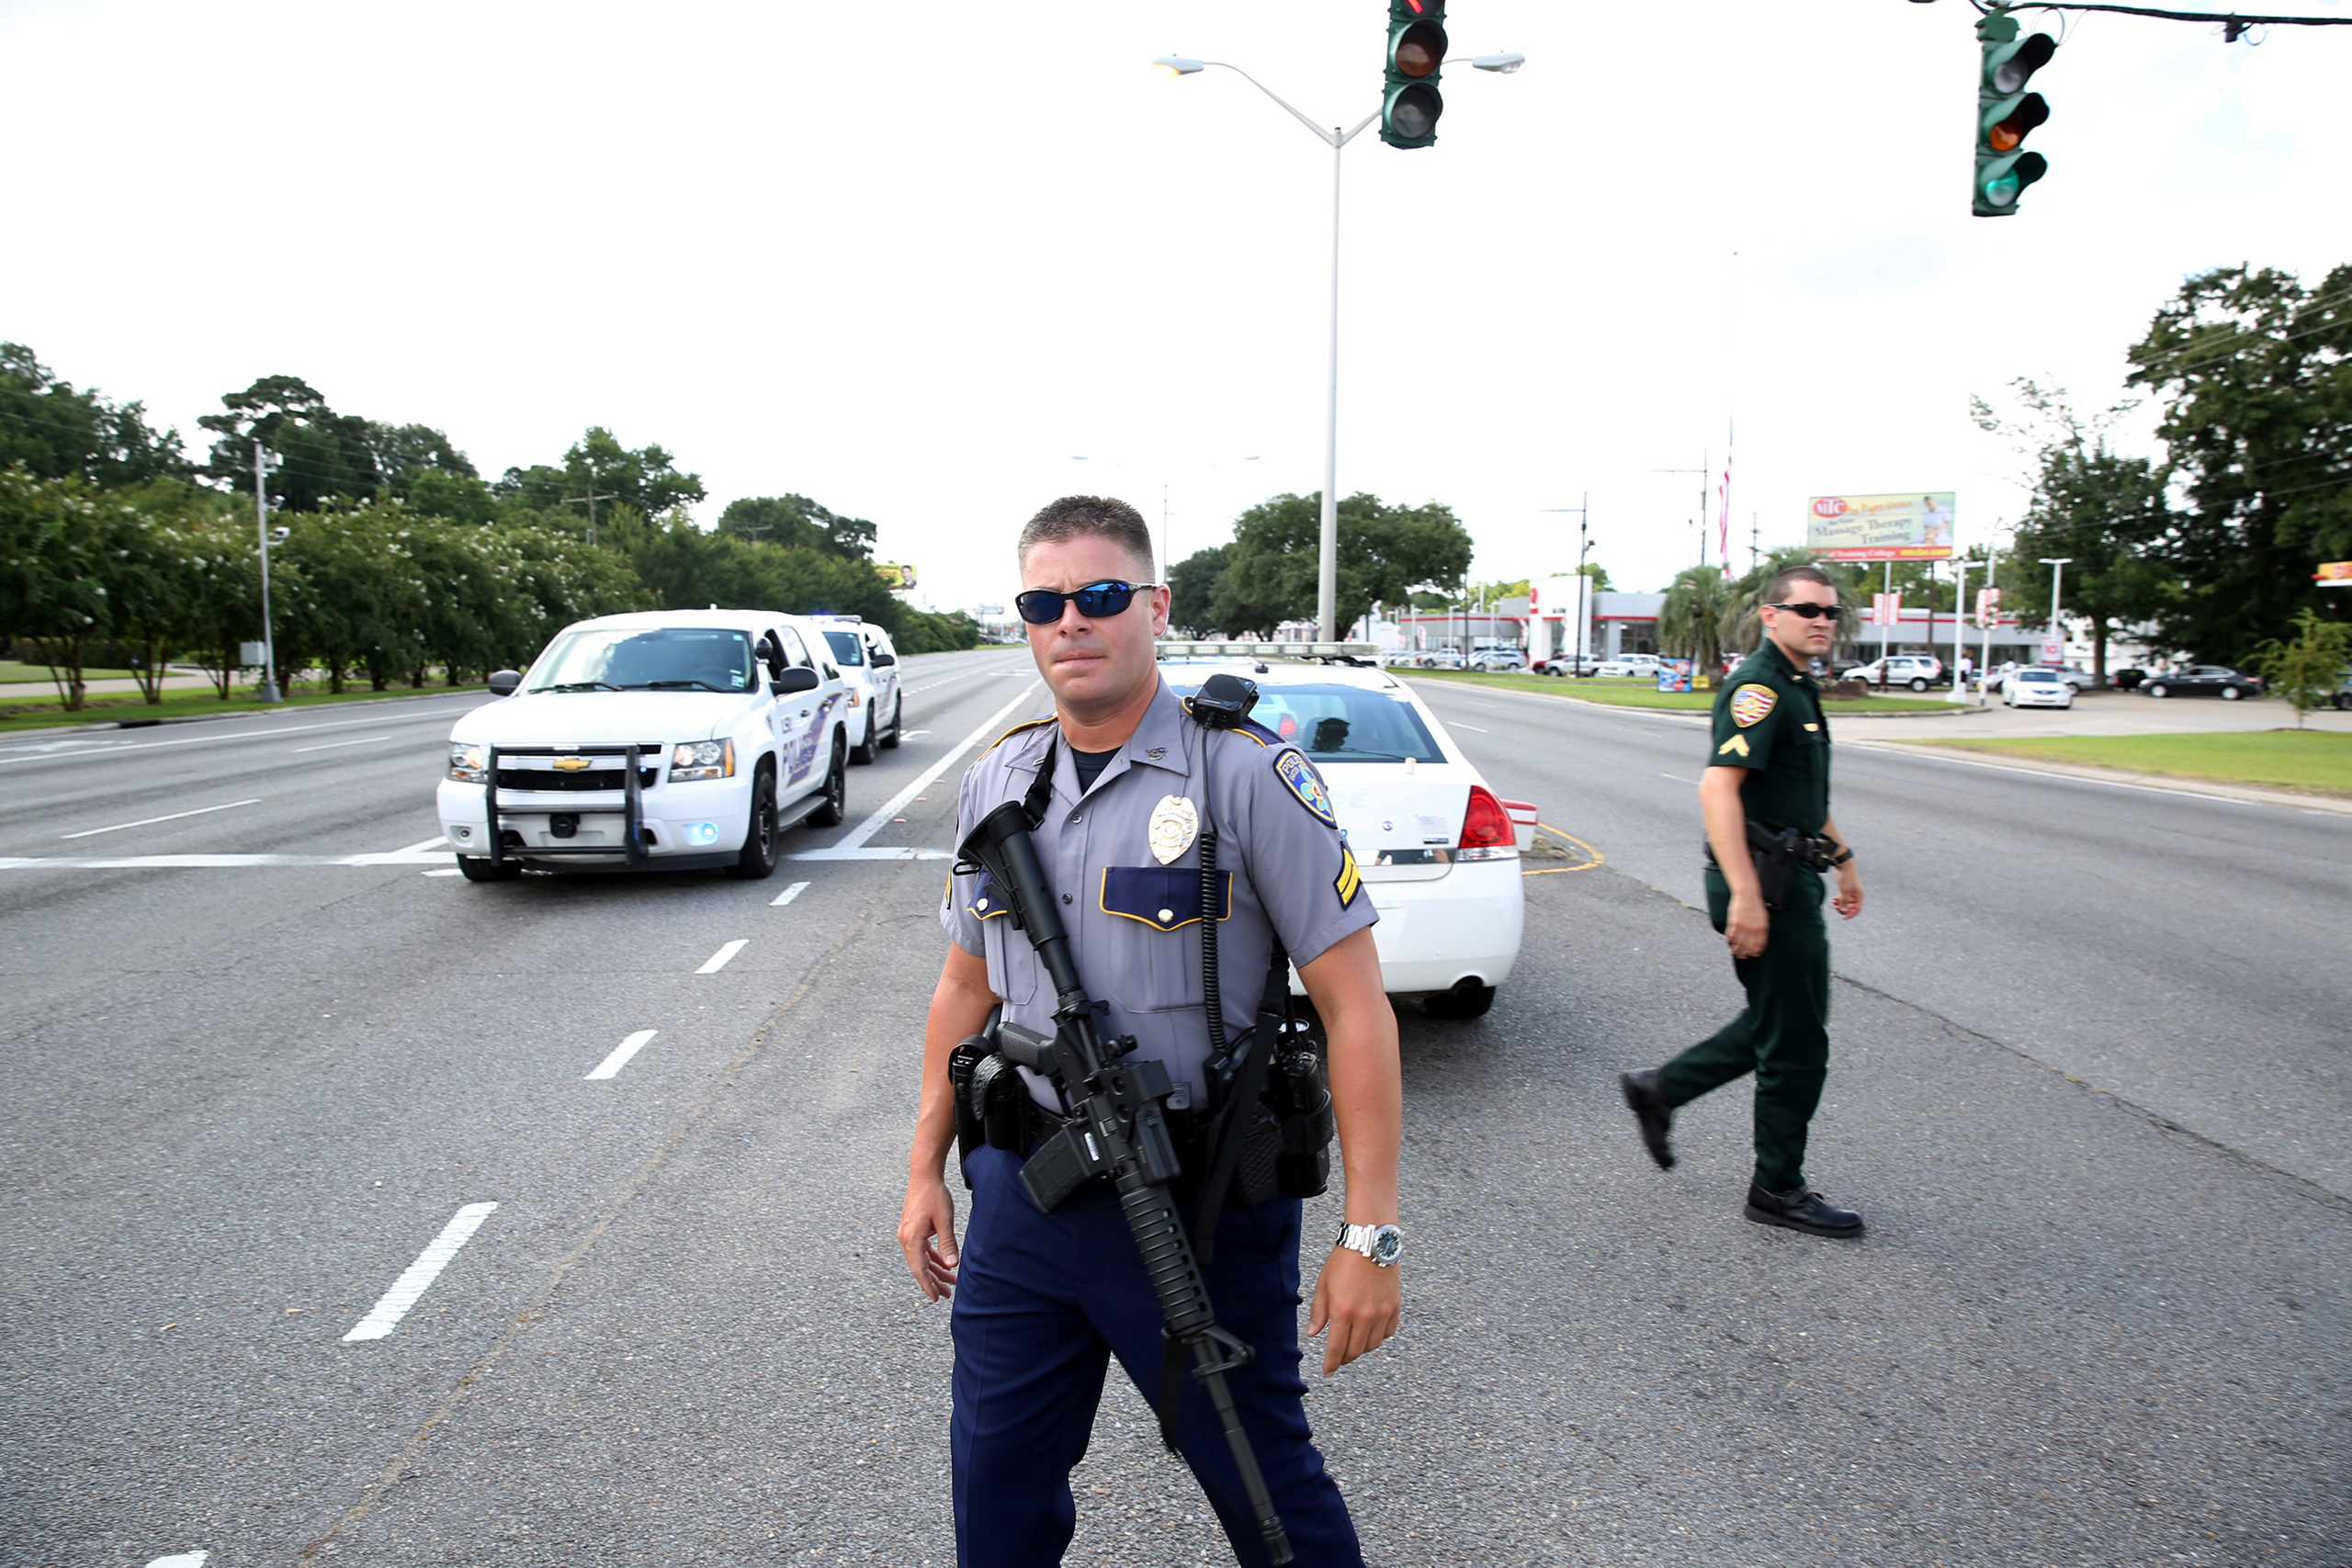 Police officers block off a road after a shooting of police in Baton Rouge, Louisiana, July 17, 2016.